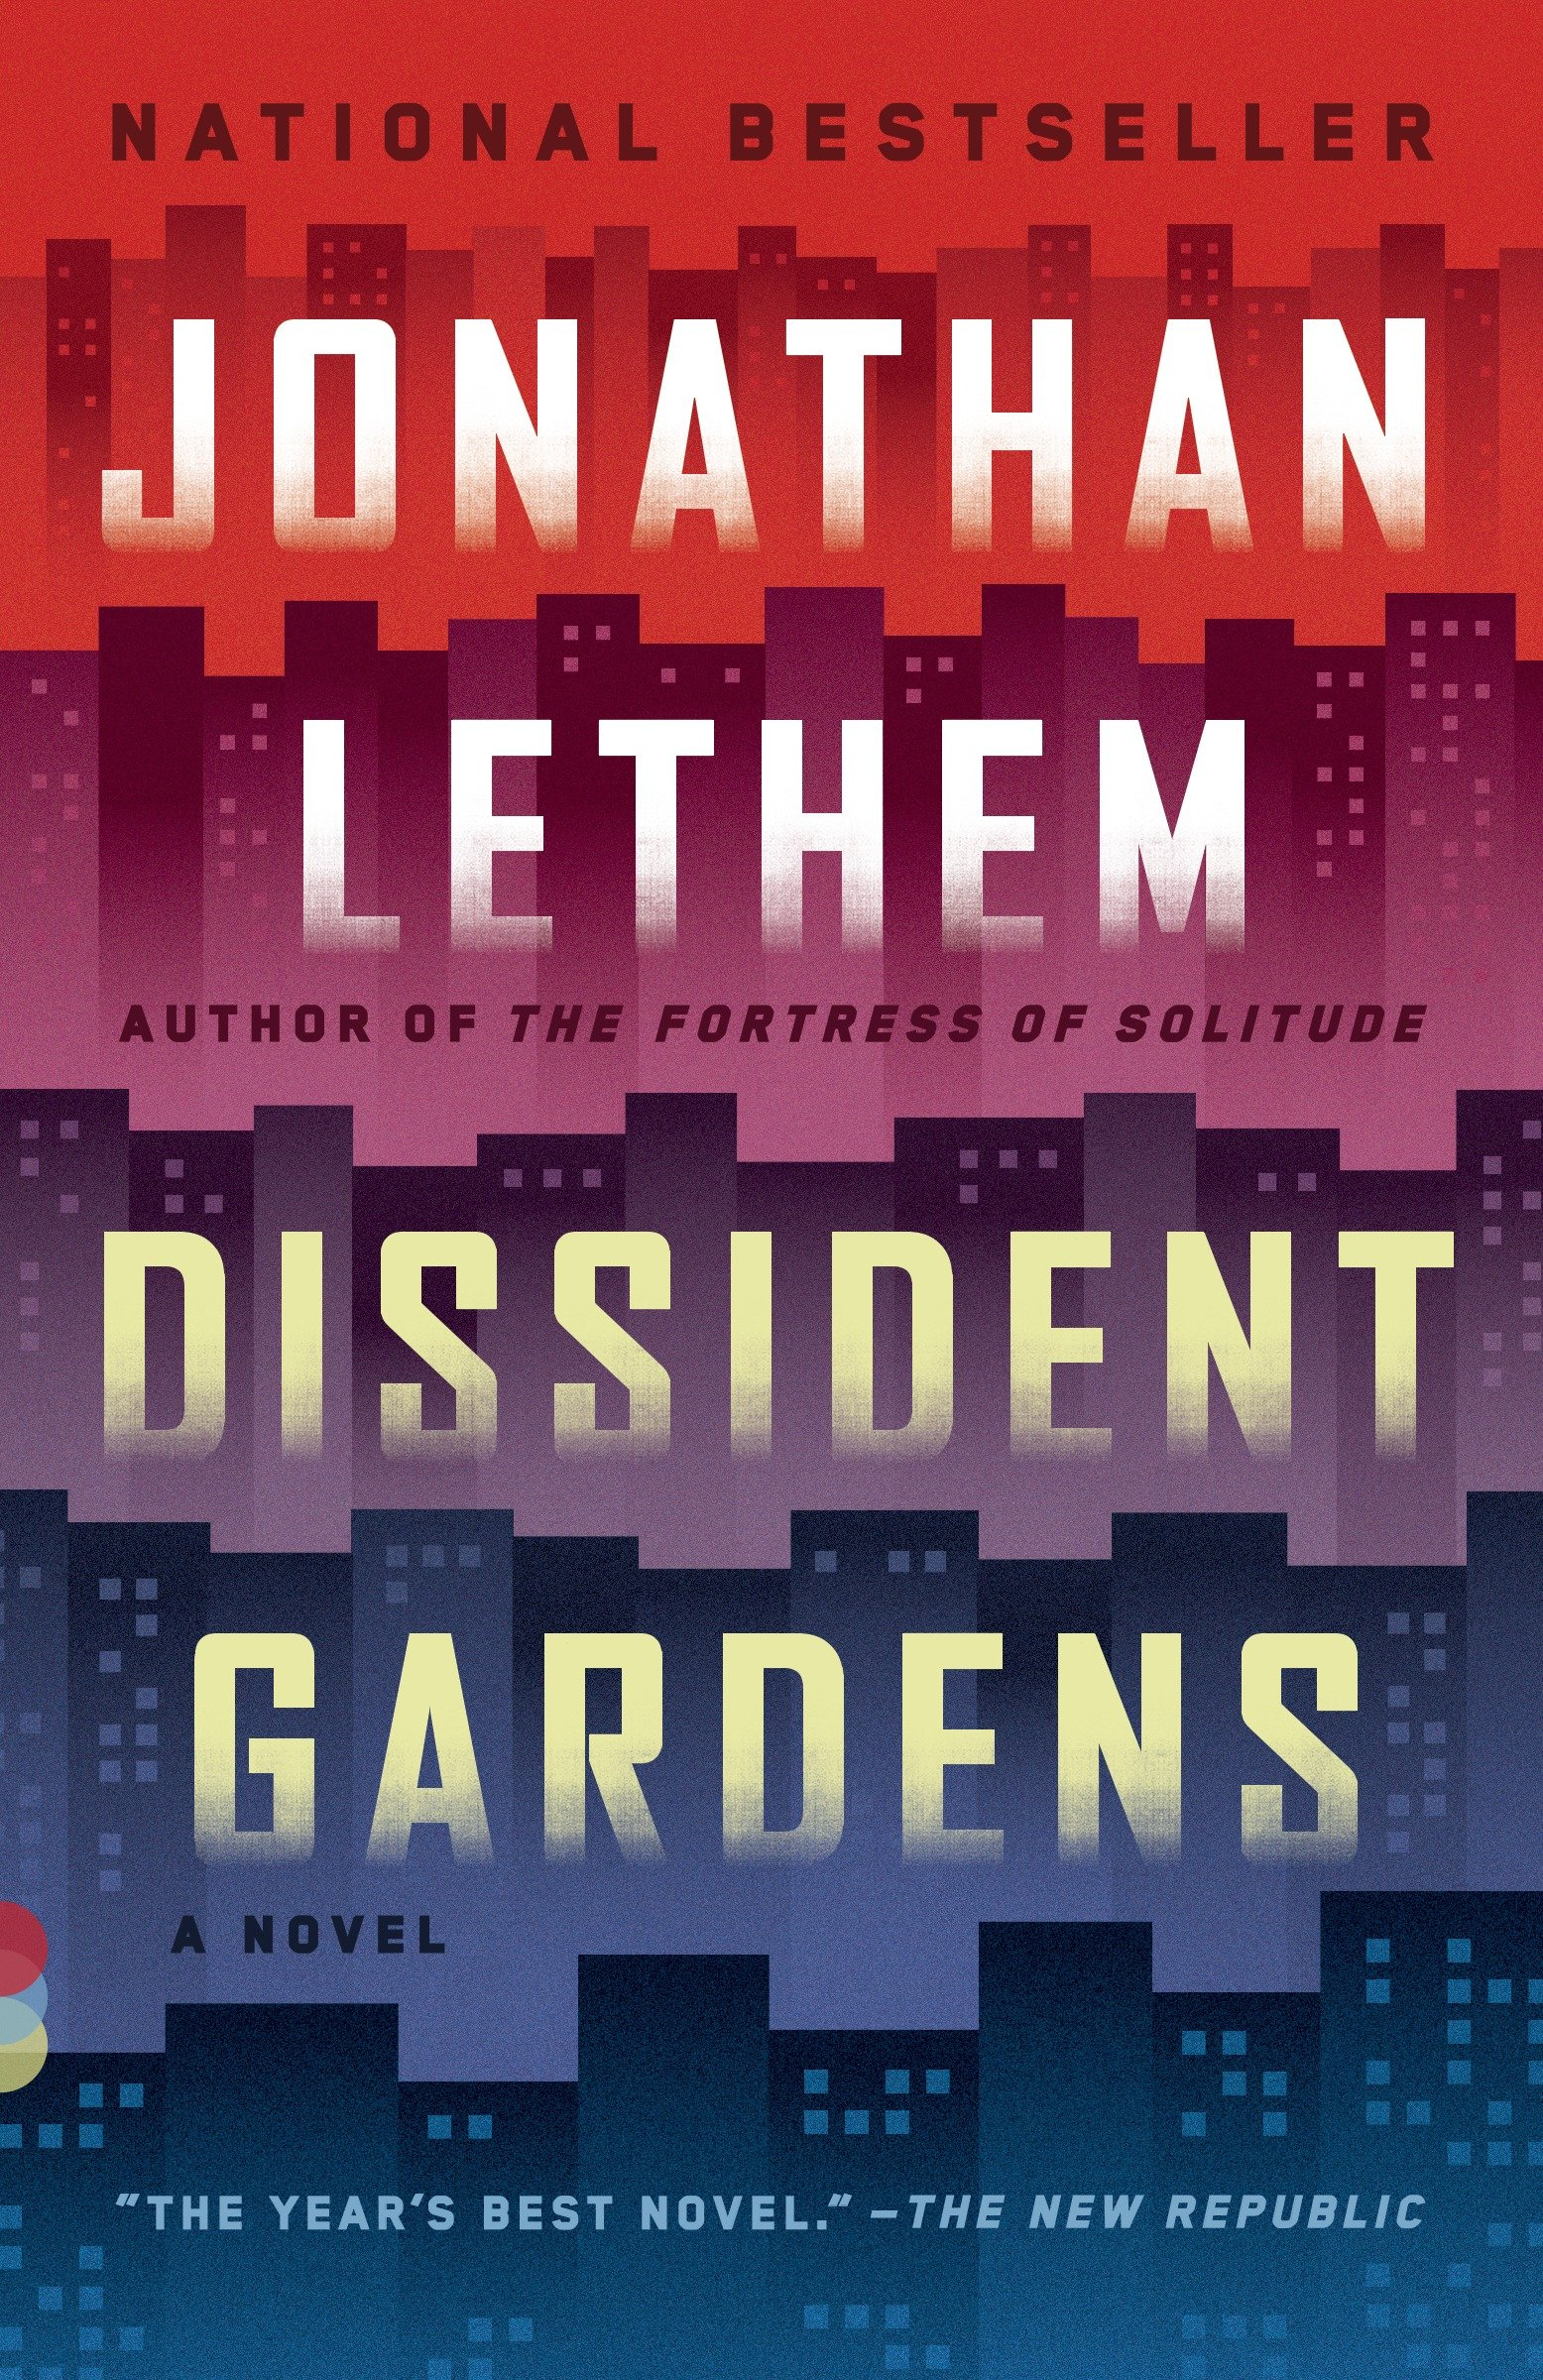 Dissident gardens cover image